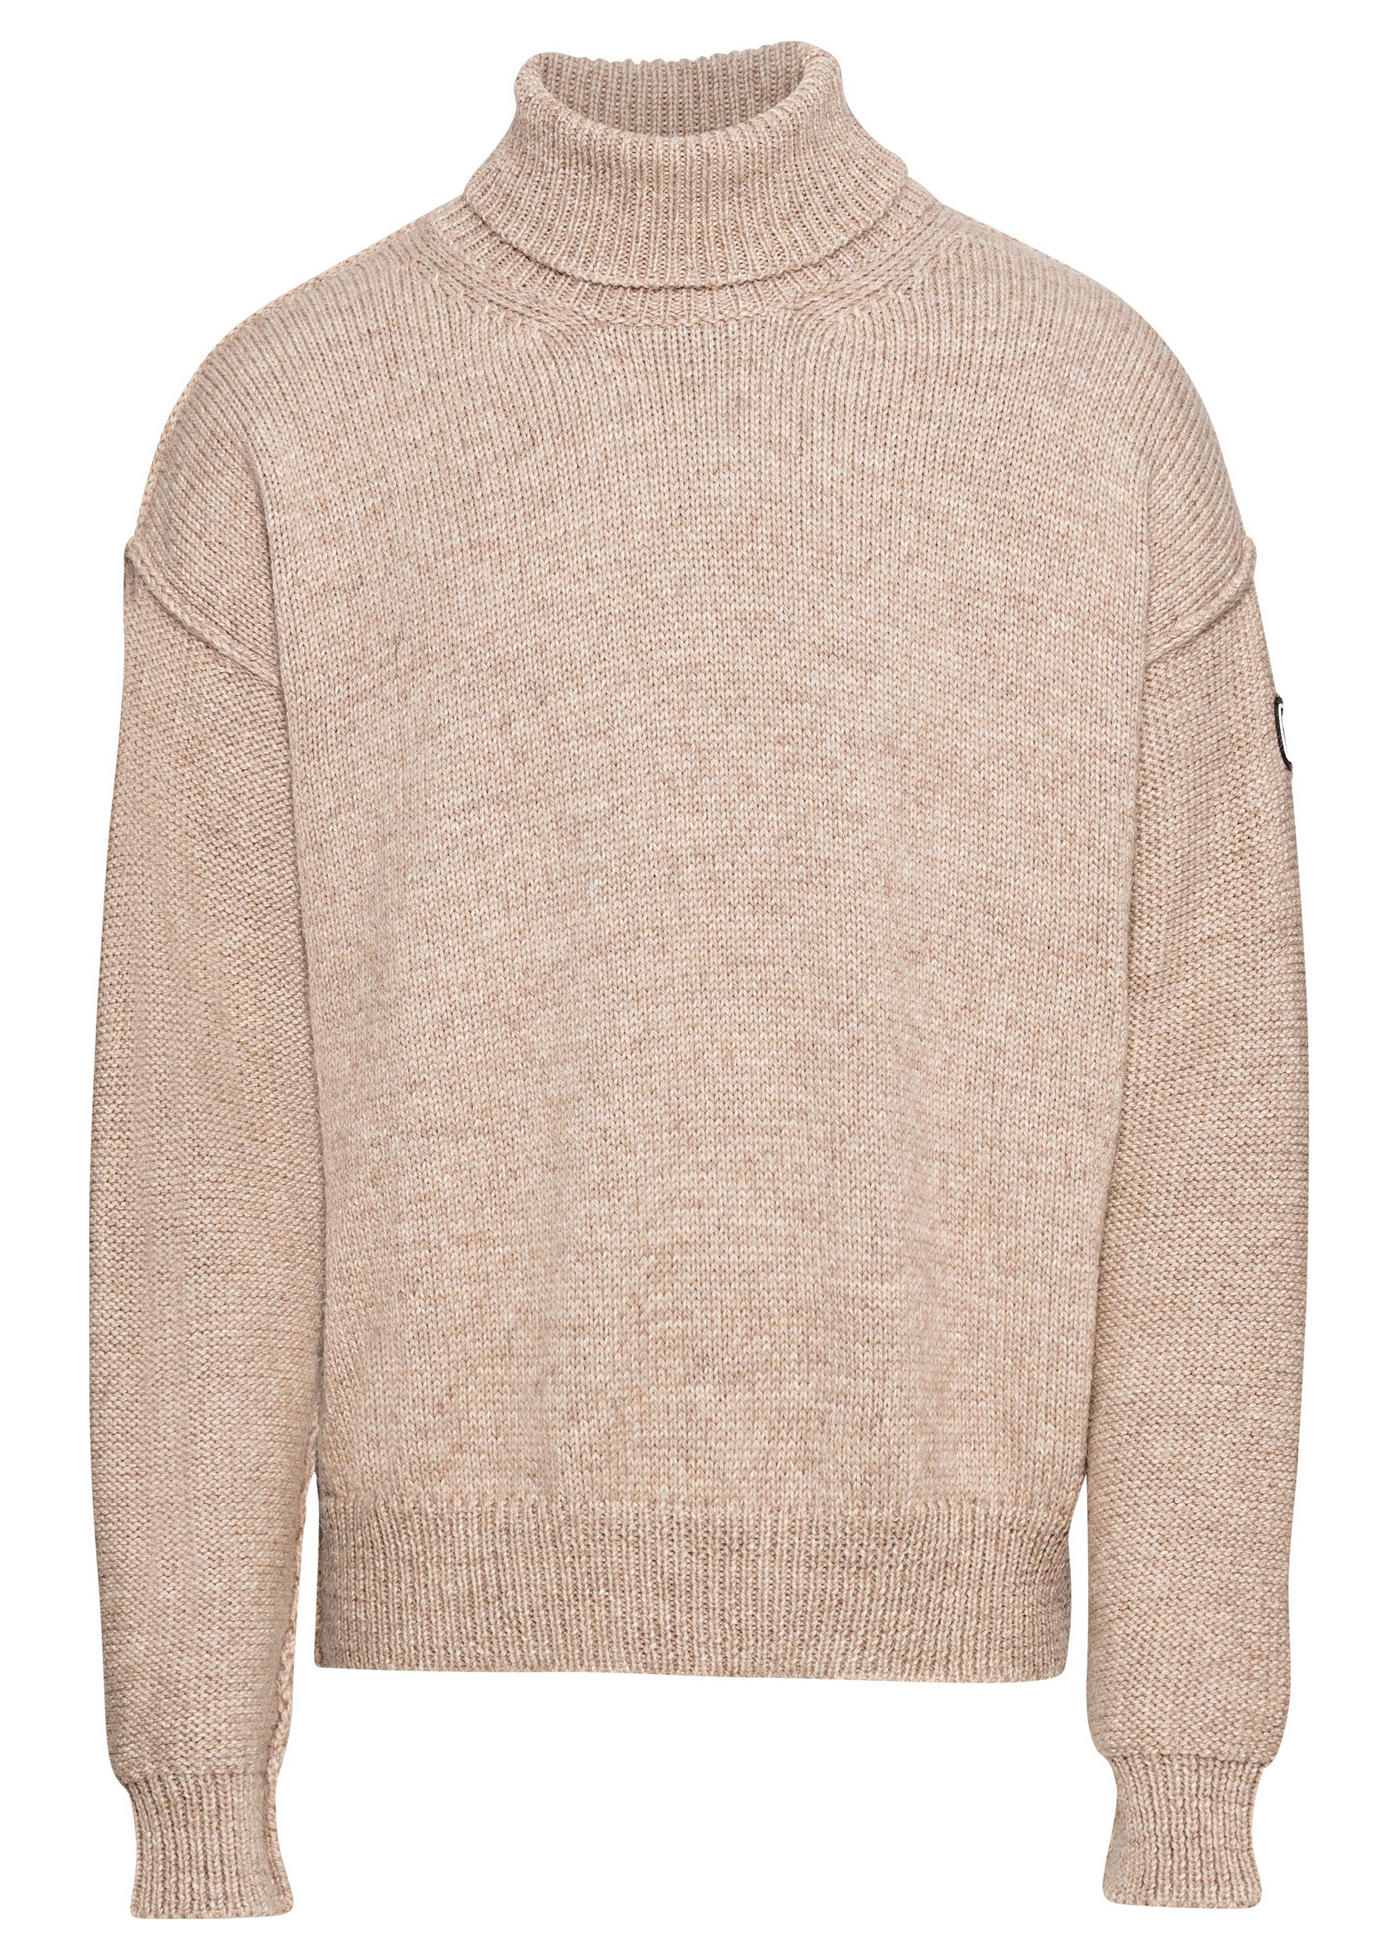 PXP TURTLE NECK image number 0